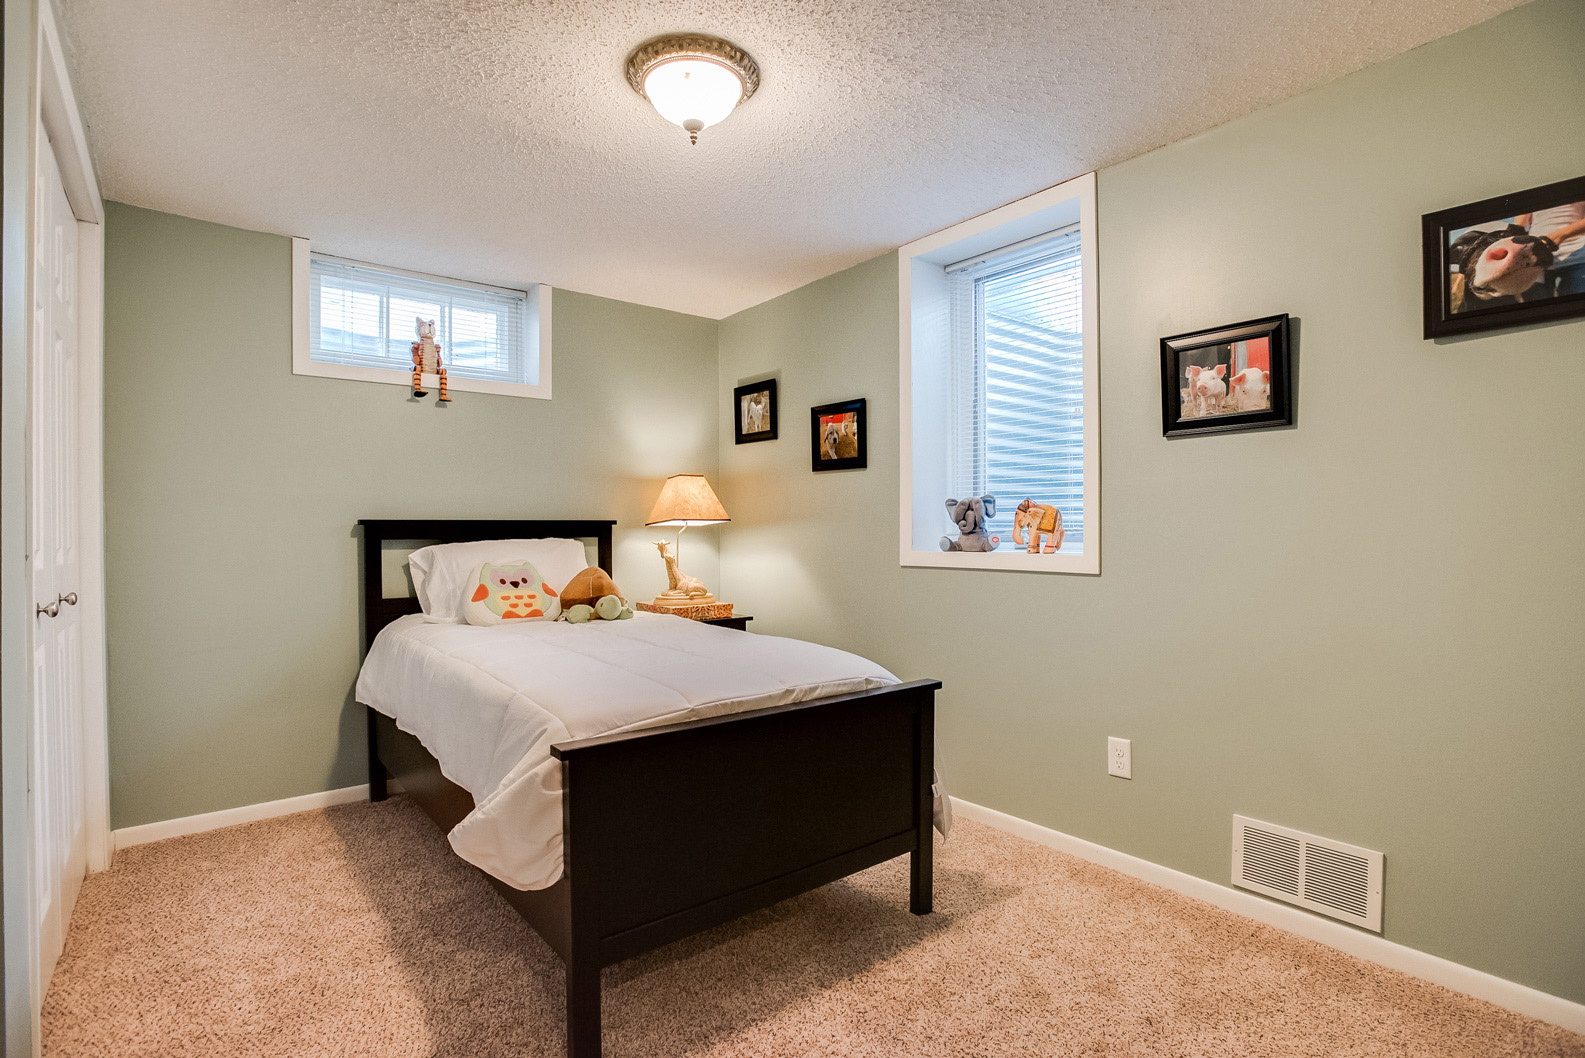 Basement Bedroom As more family homes that havenu0027t been sold for 40-50 years are hitting the  market we are seeing more homes with basement u0027bedroomsu0027 from years past  without ...